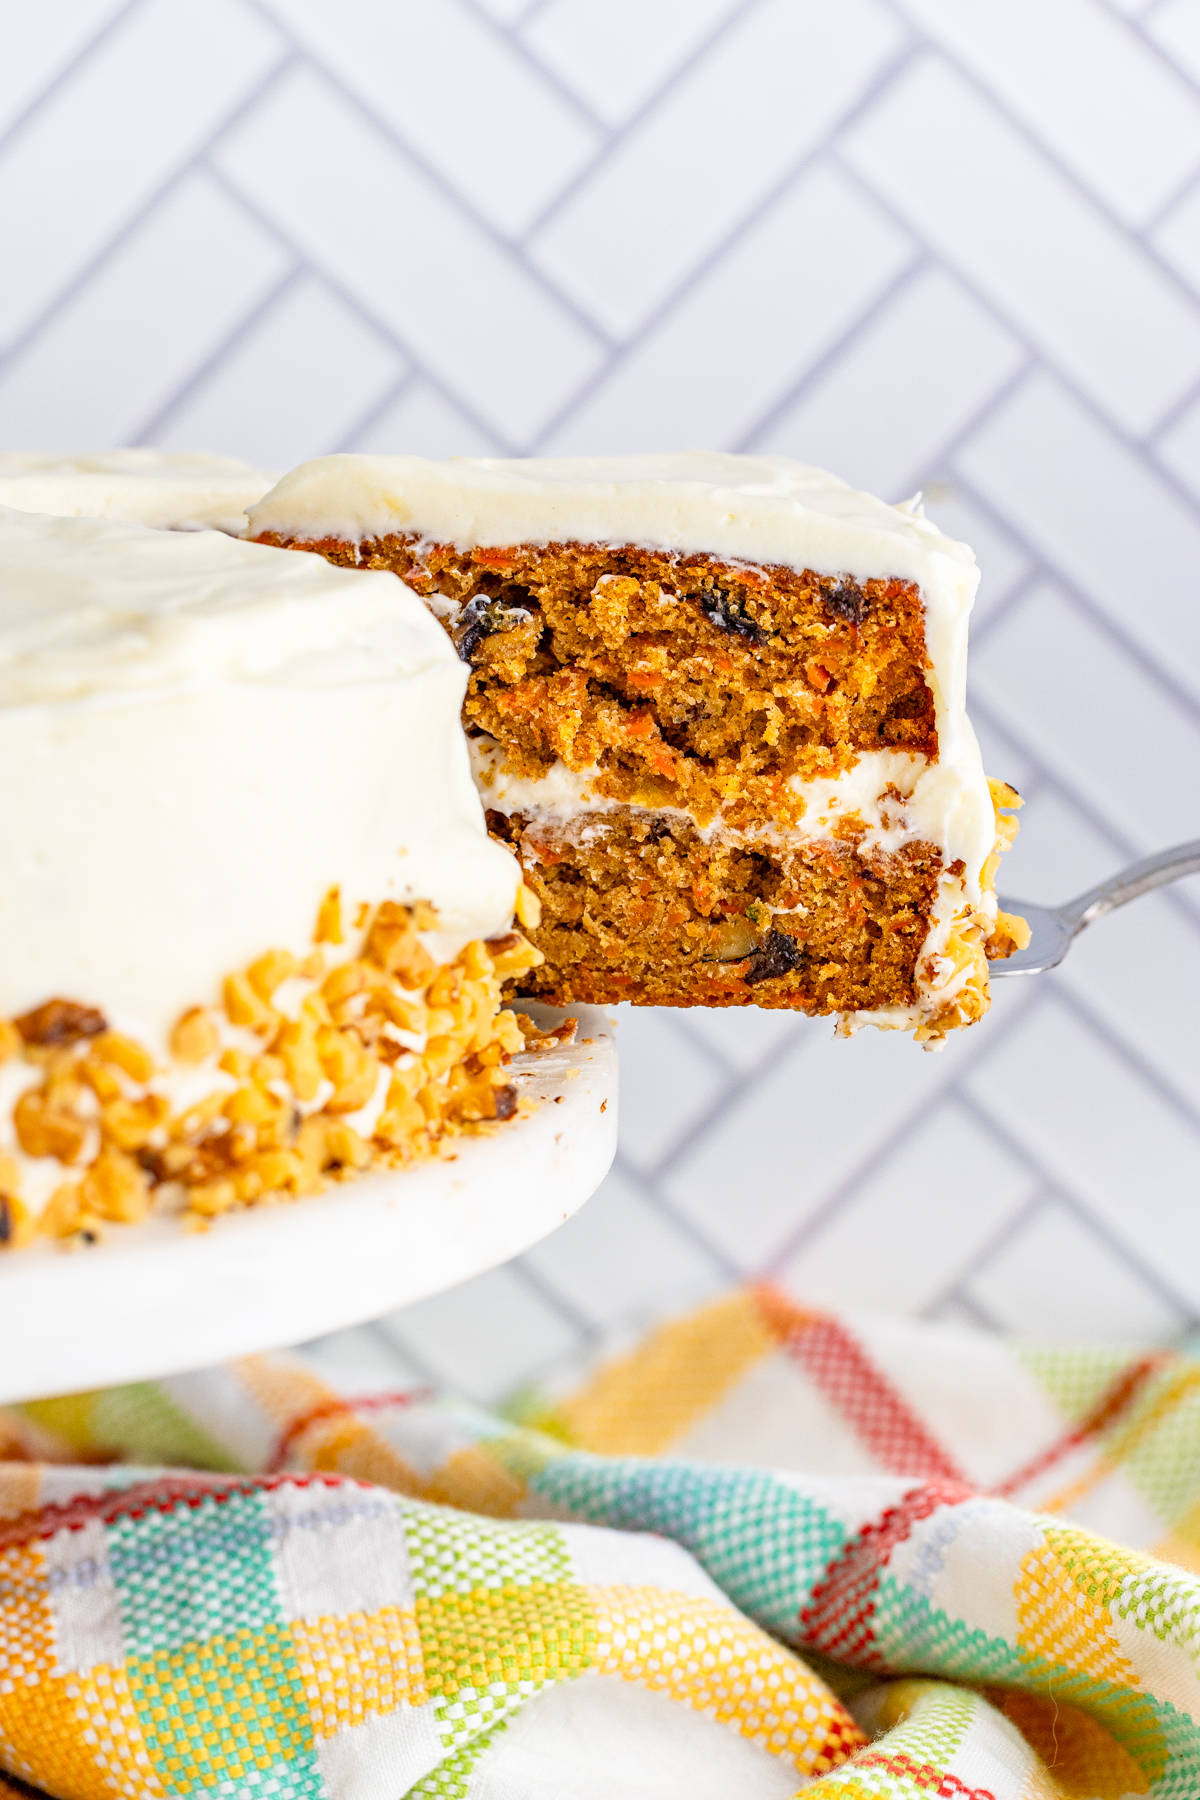 Cake server pulling out slice of Carrot Cake